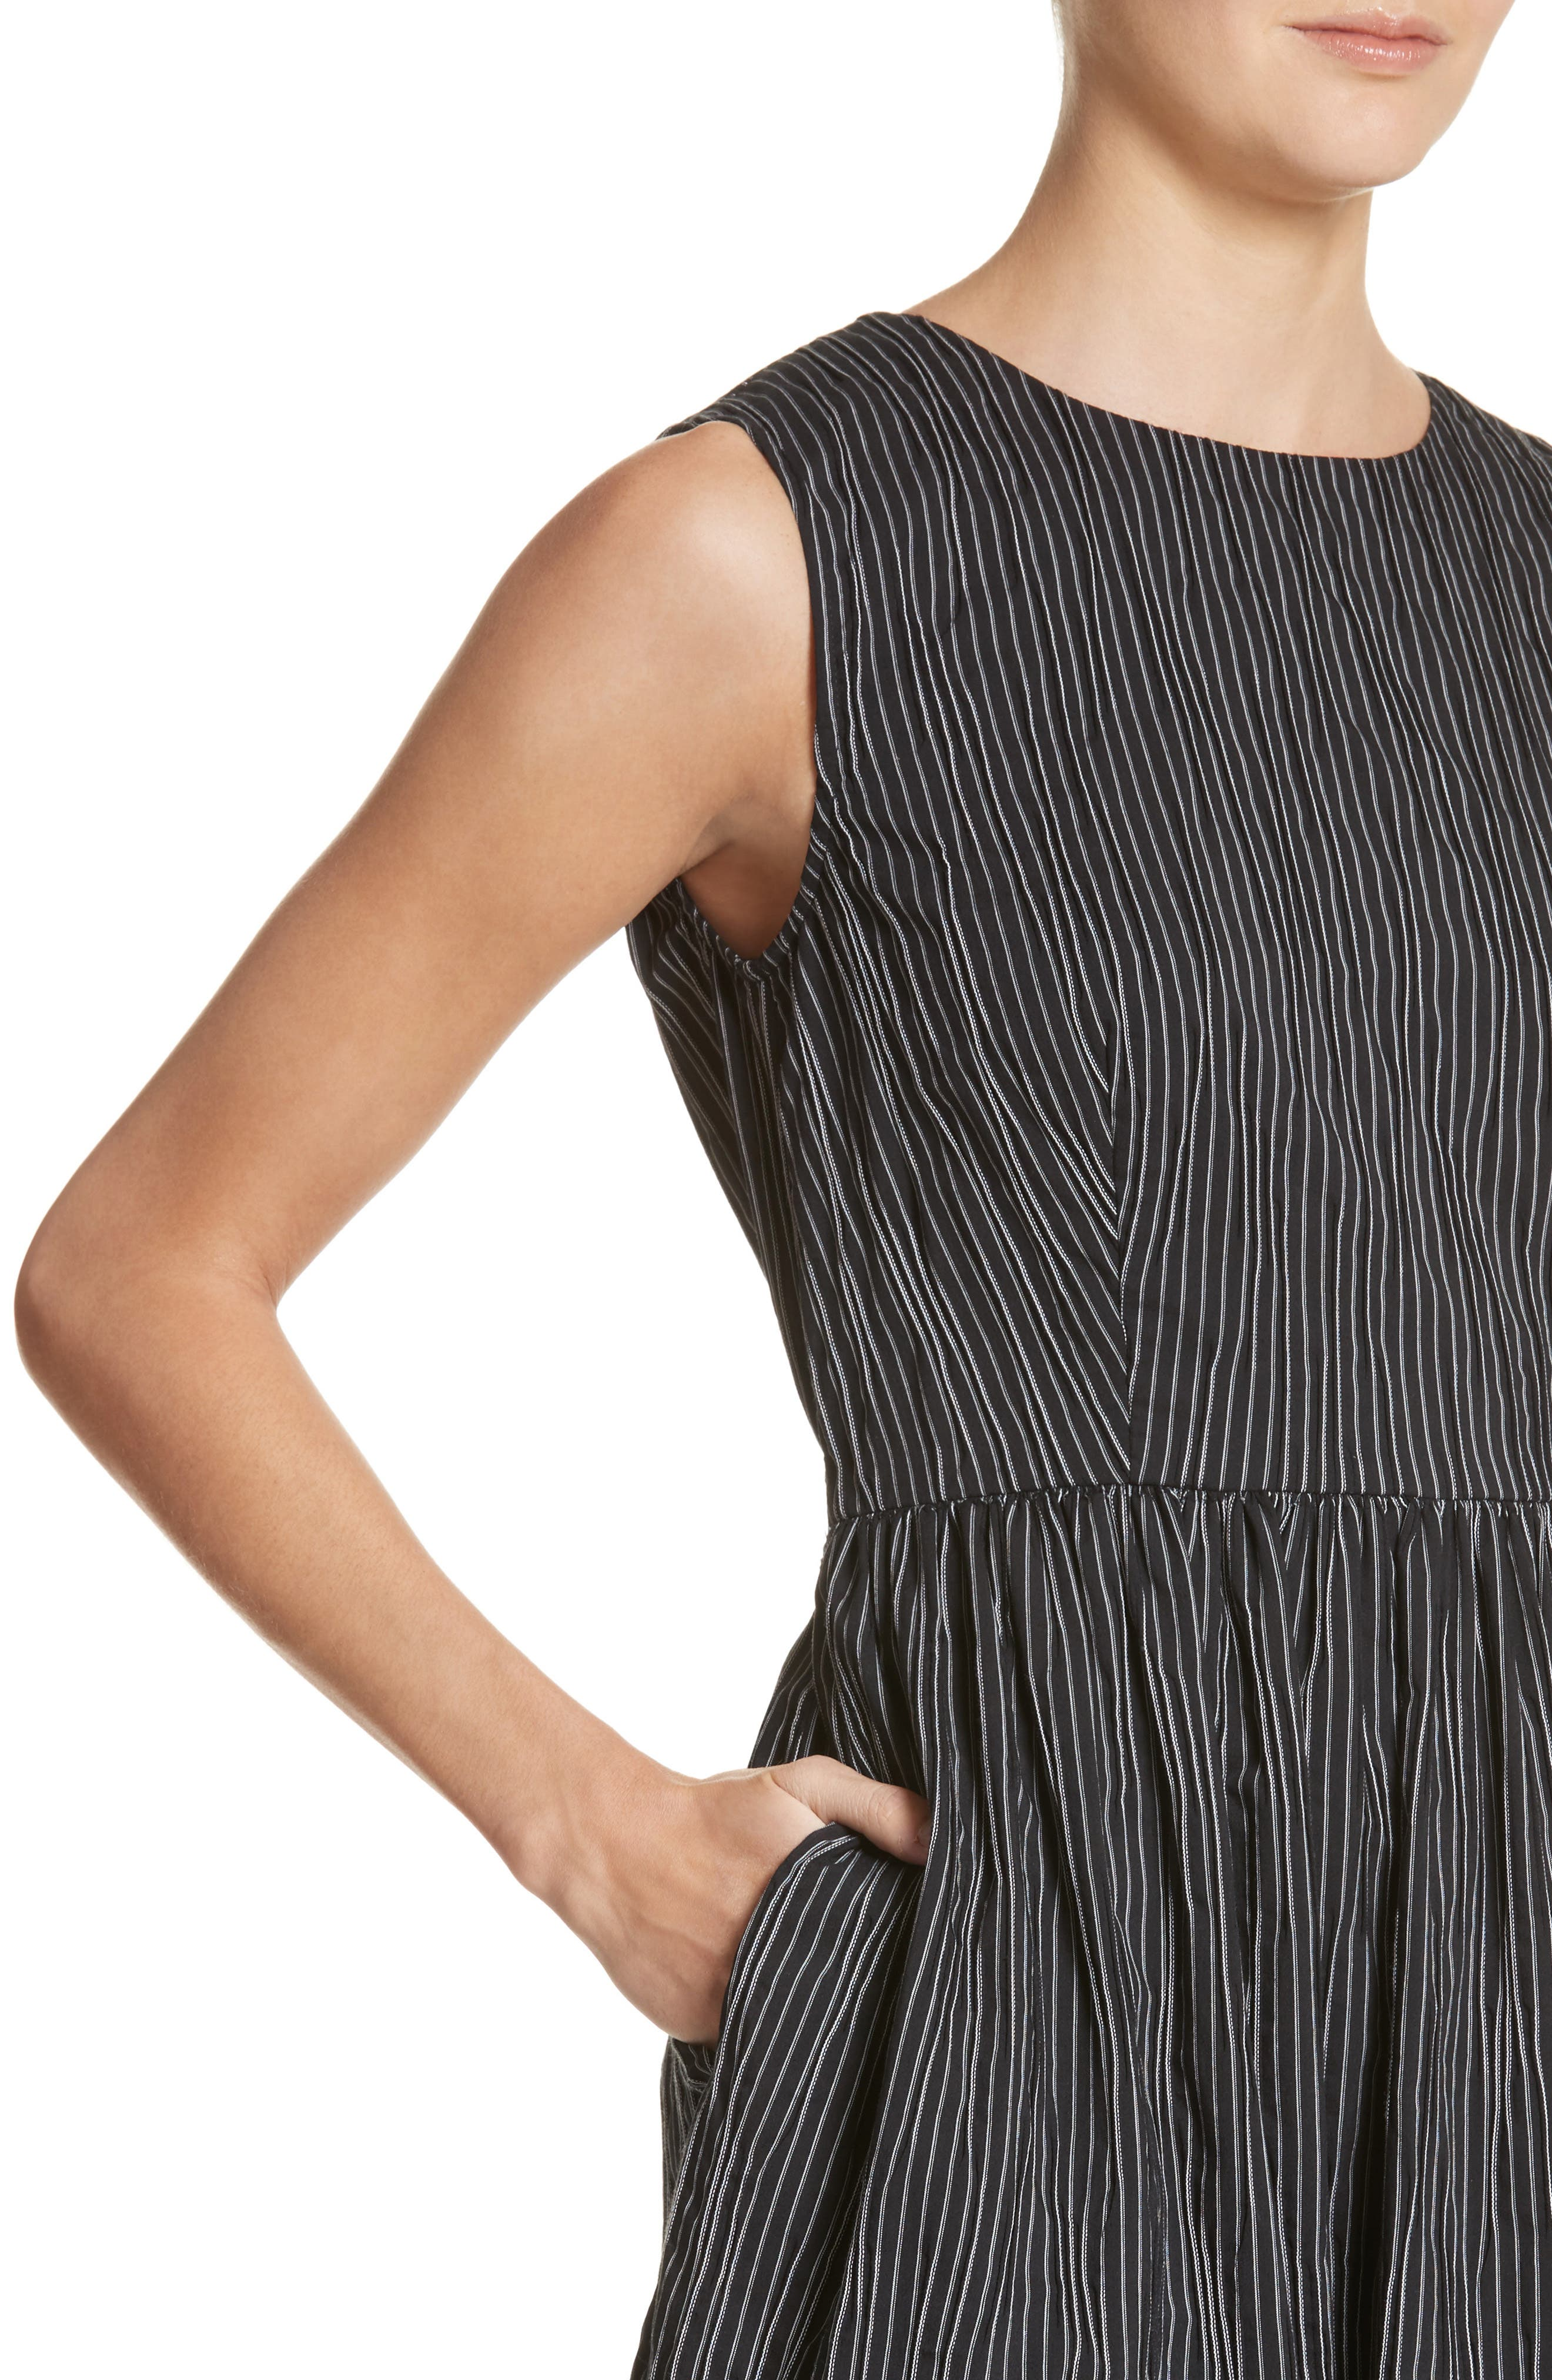 Stripe Crinkle Cotton Blend Midi Dress,                             Alternate thumbnail 4, color,                             Black/ White Stripe